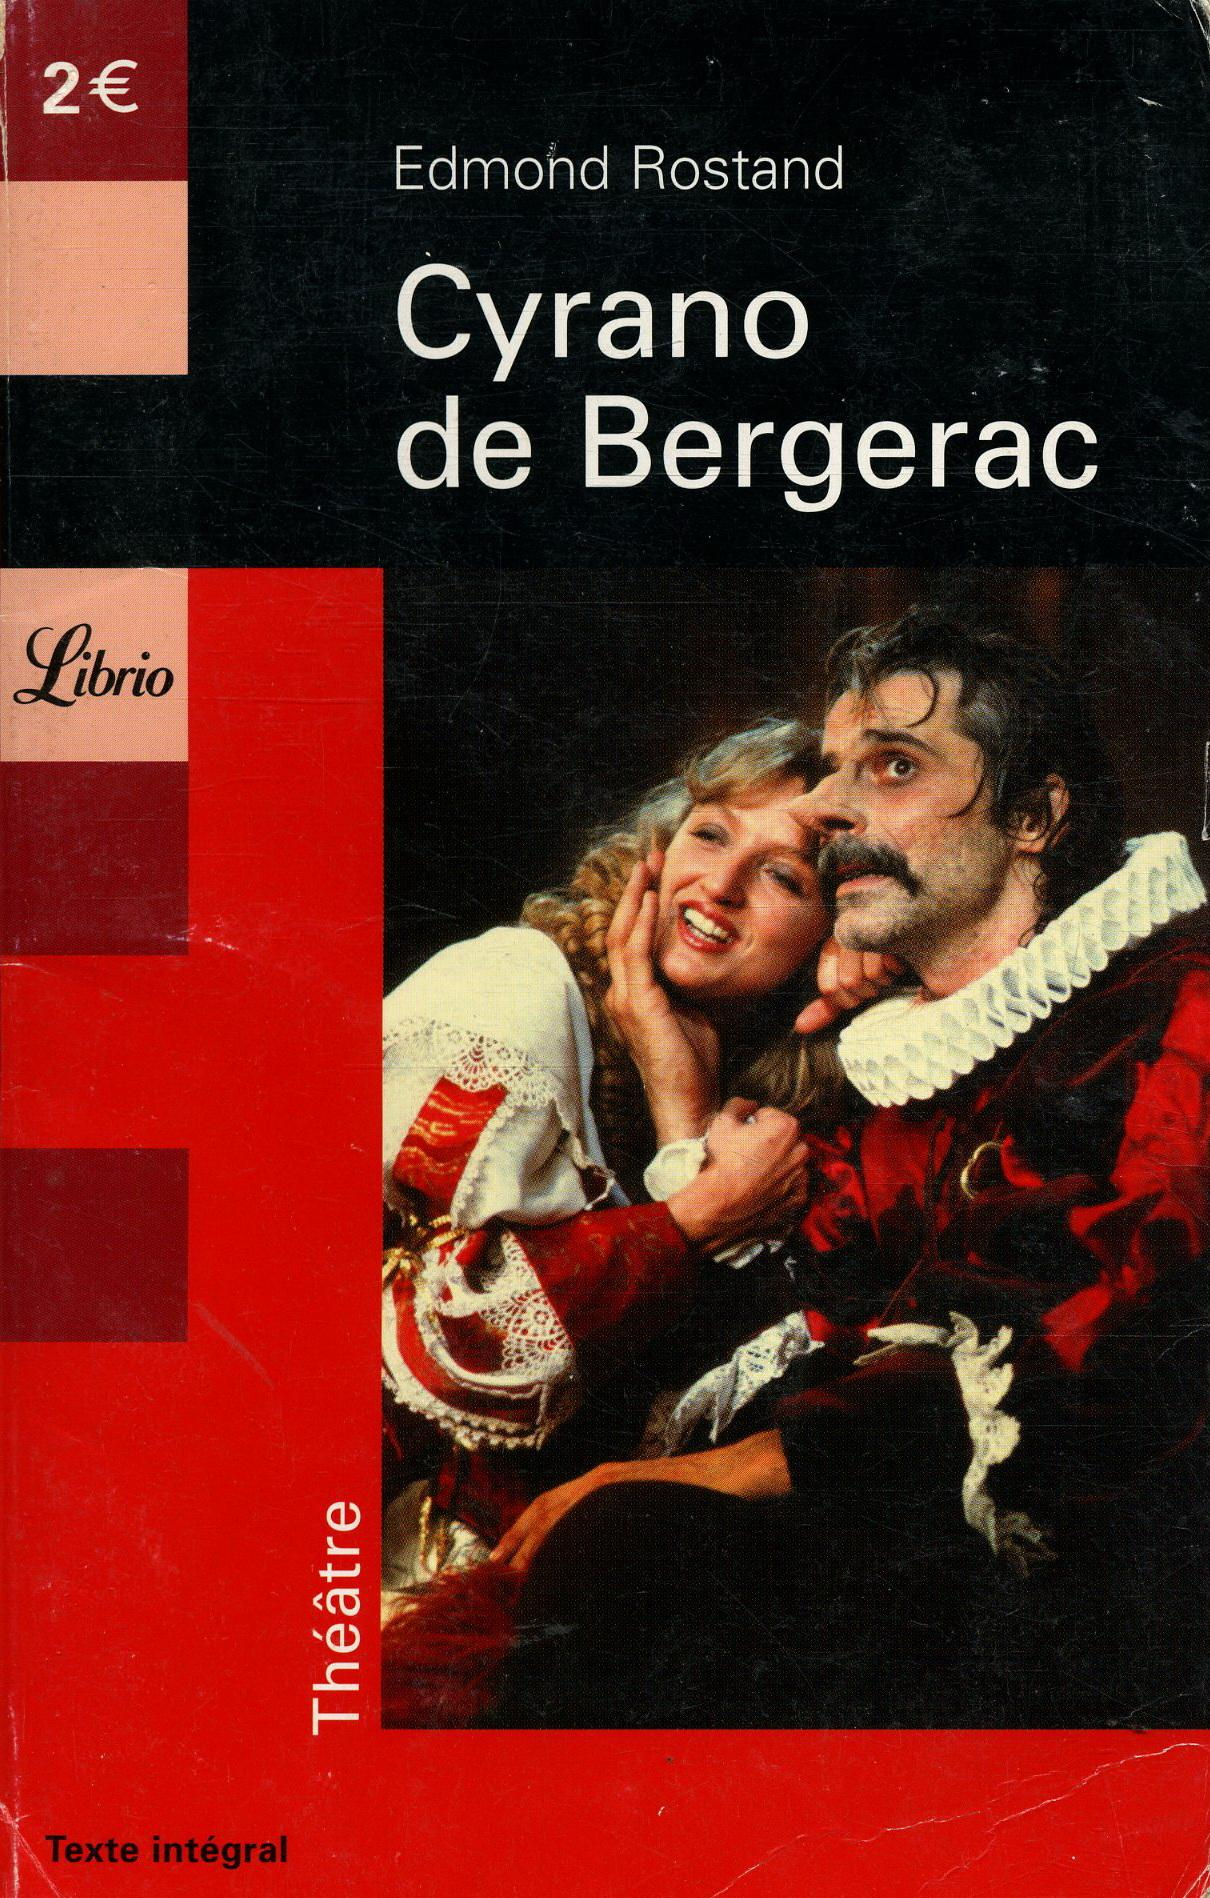 cyrano de bergerac the hero About cyrano rostand's hero is based on a real-life person named cyrano, who was born in 1619 a castle owned by his father was called bergerac.